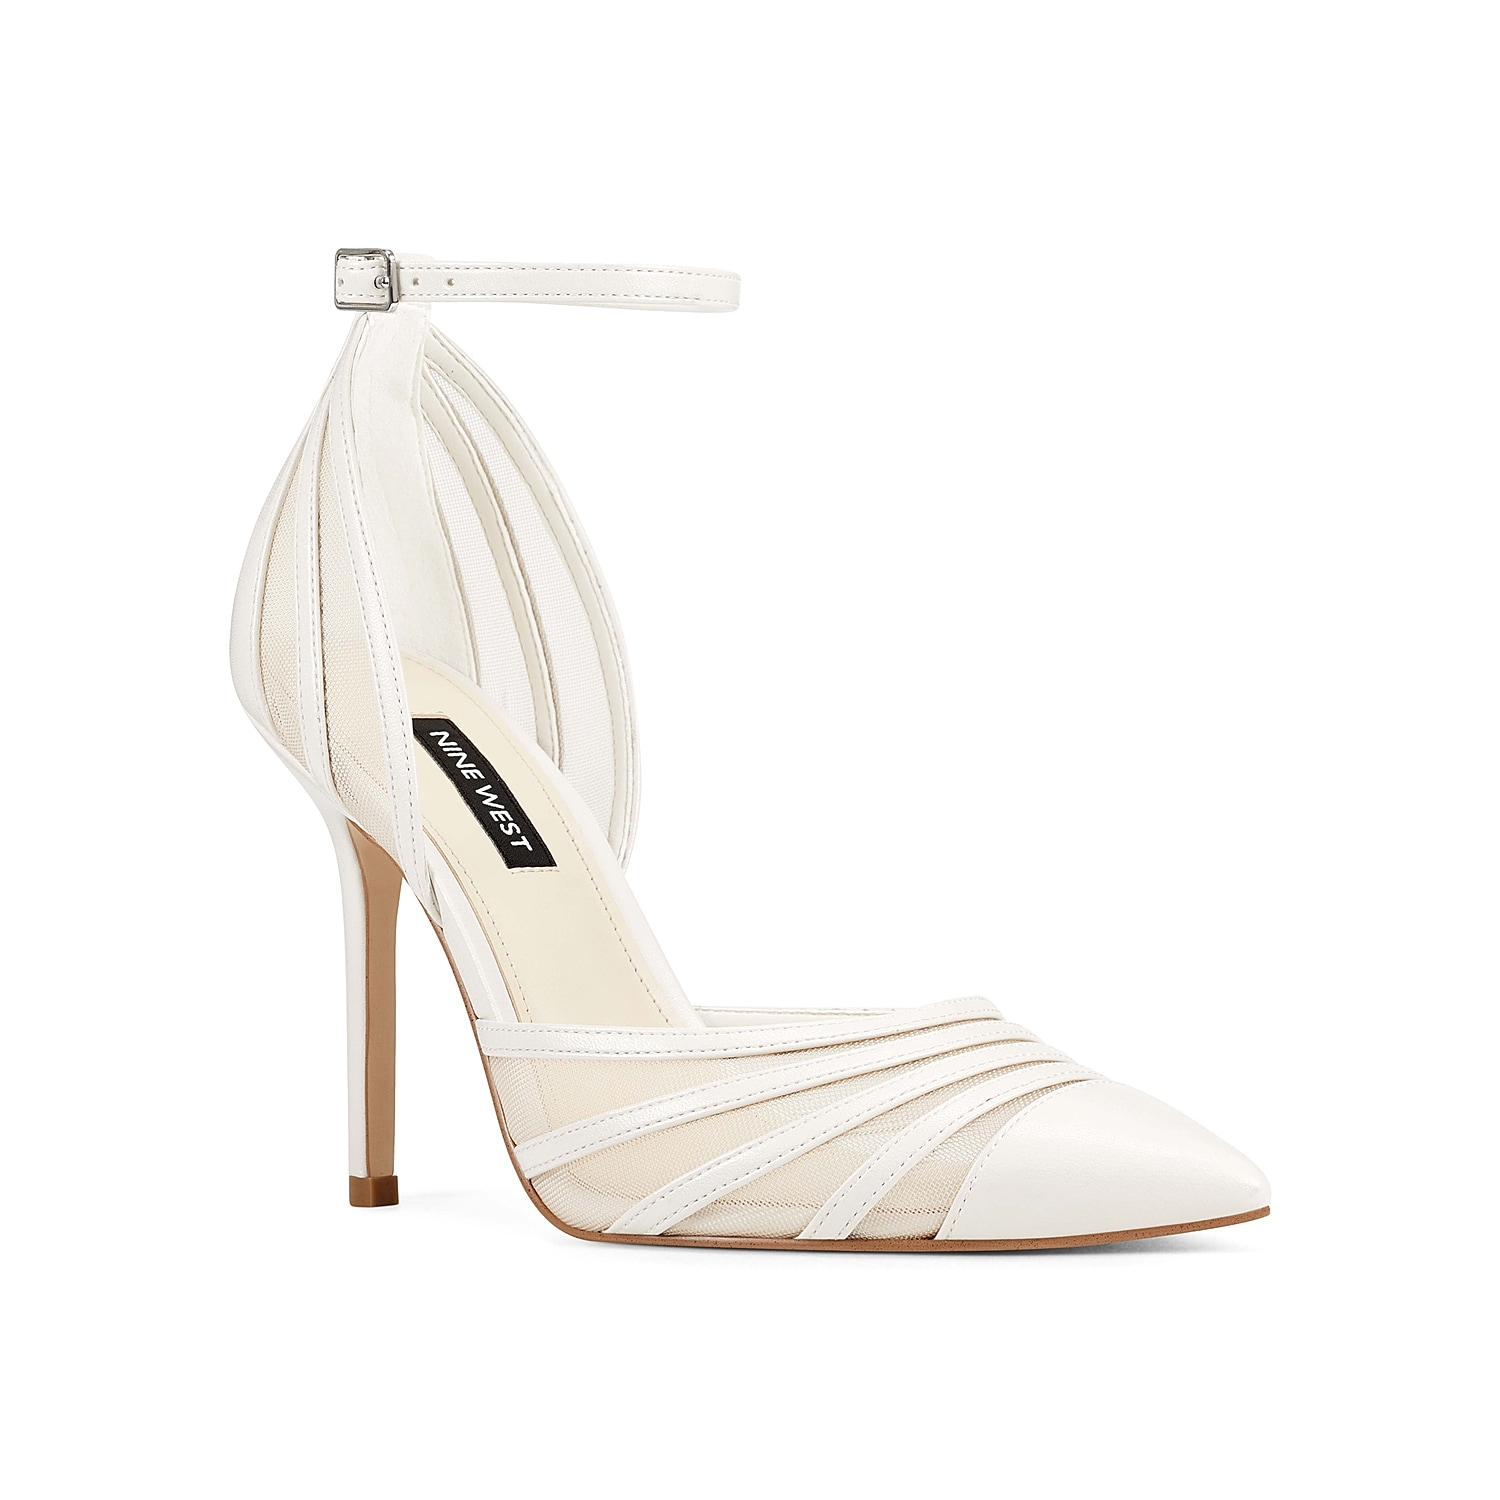 Dress up your ensemble in high fashion with the Beck 3 pump from Nine West. This eye-catching pair is fashioned with a mixed faux leather and mesh upper with a thin ankle strap for secured steps!